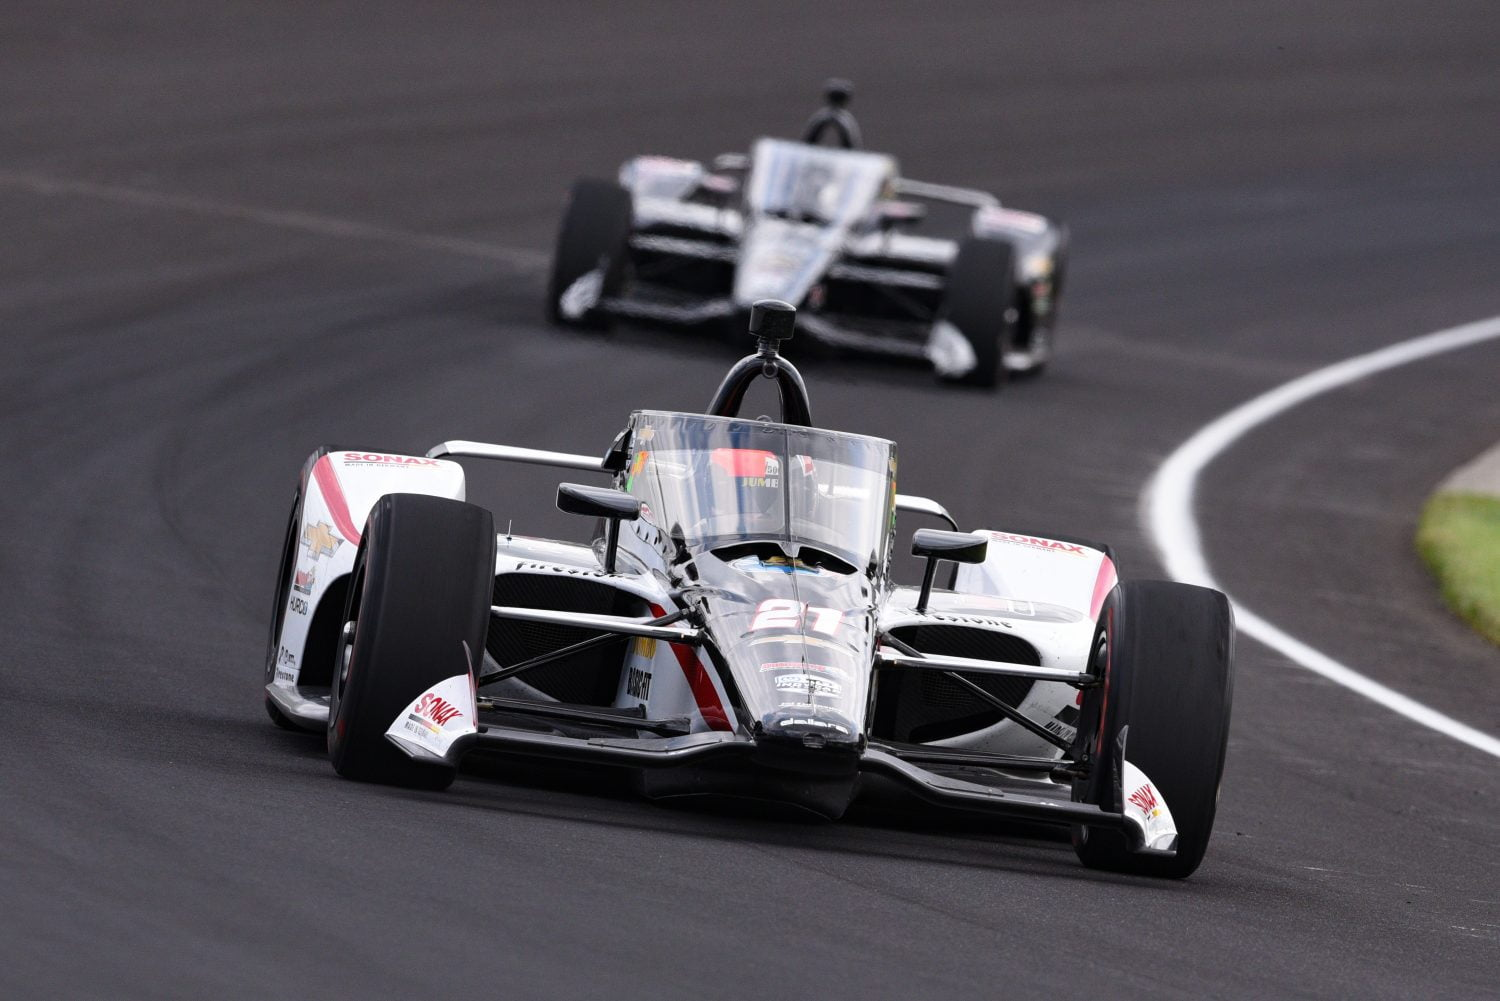 Preview Indy 500: Doornbos over VeeKay's vierde startplek, kansen, crashen en Alonso